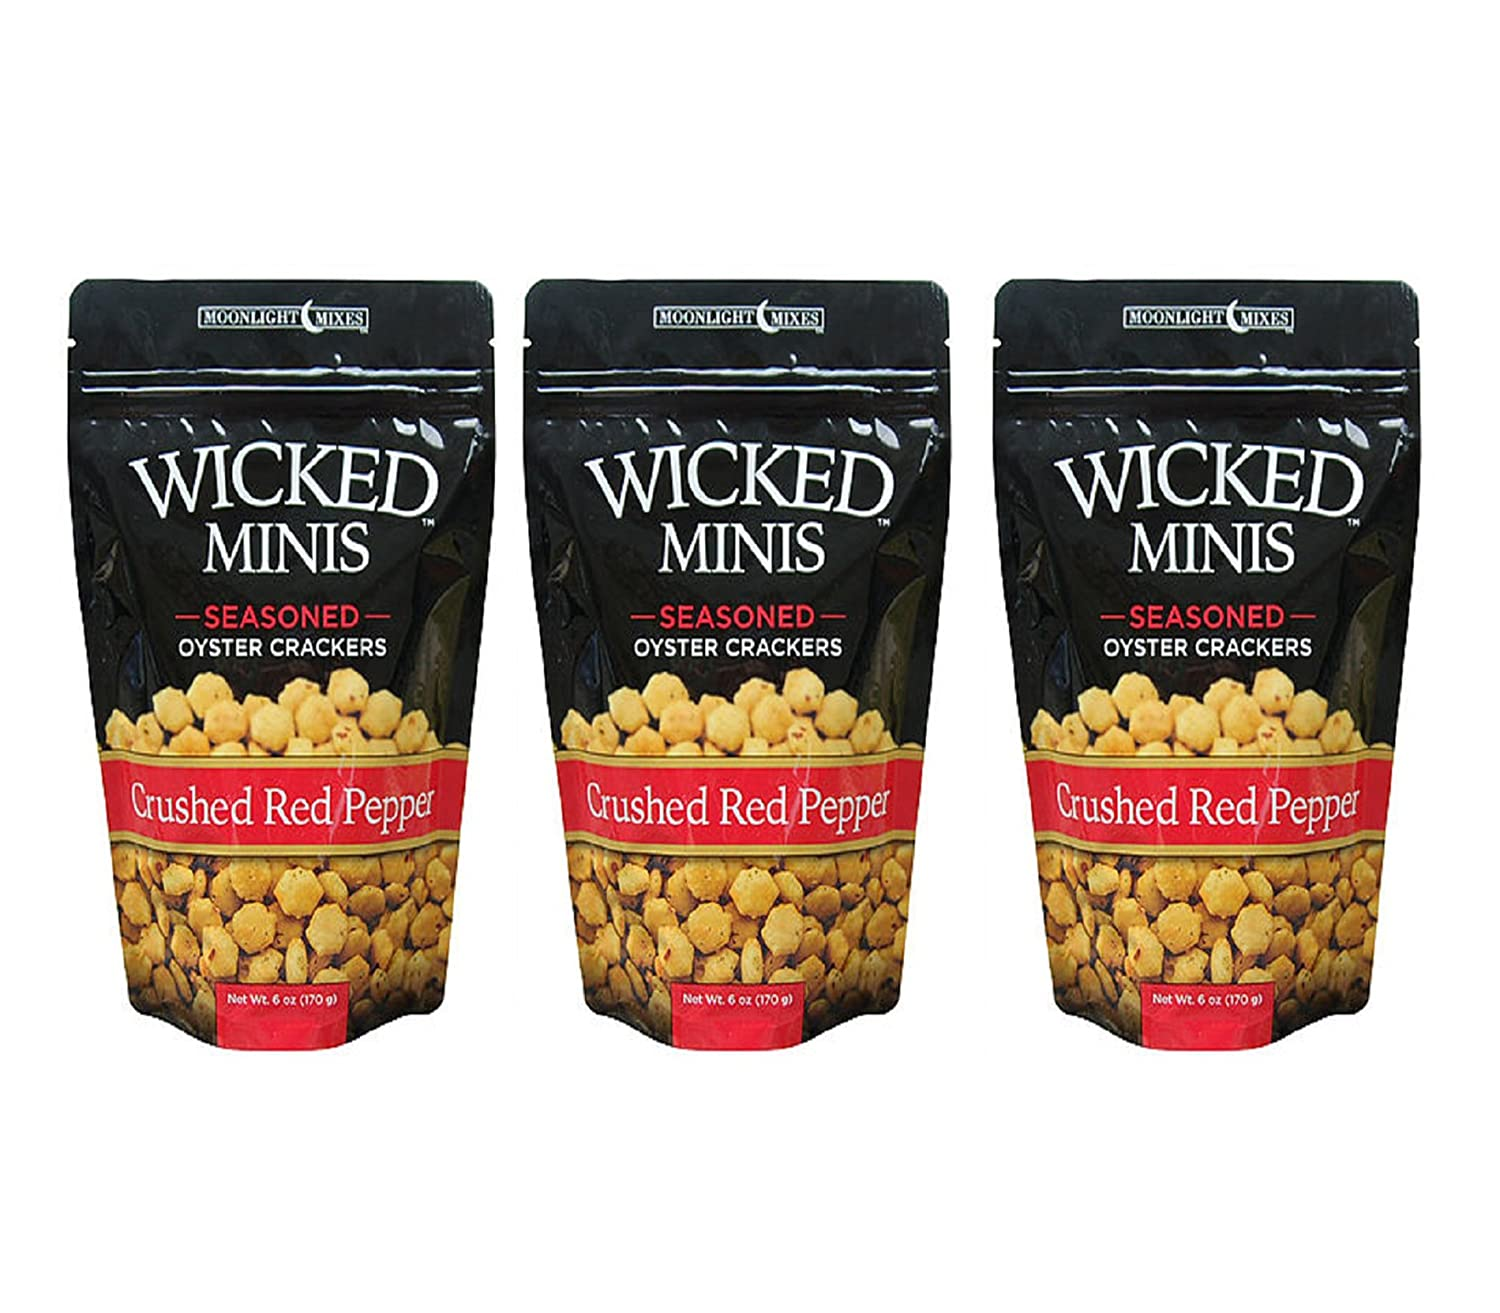 Wicked Mix Premium Seaoned Flavor Garden Dill Soup and Oyster Crackers,2-Pack Of 6 Ounce Bag (Garden Dill, 2-Pack) Moonlight Mixes